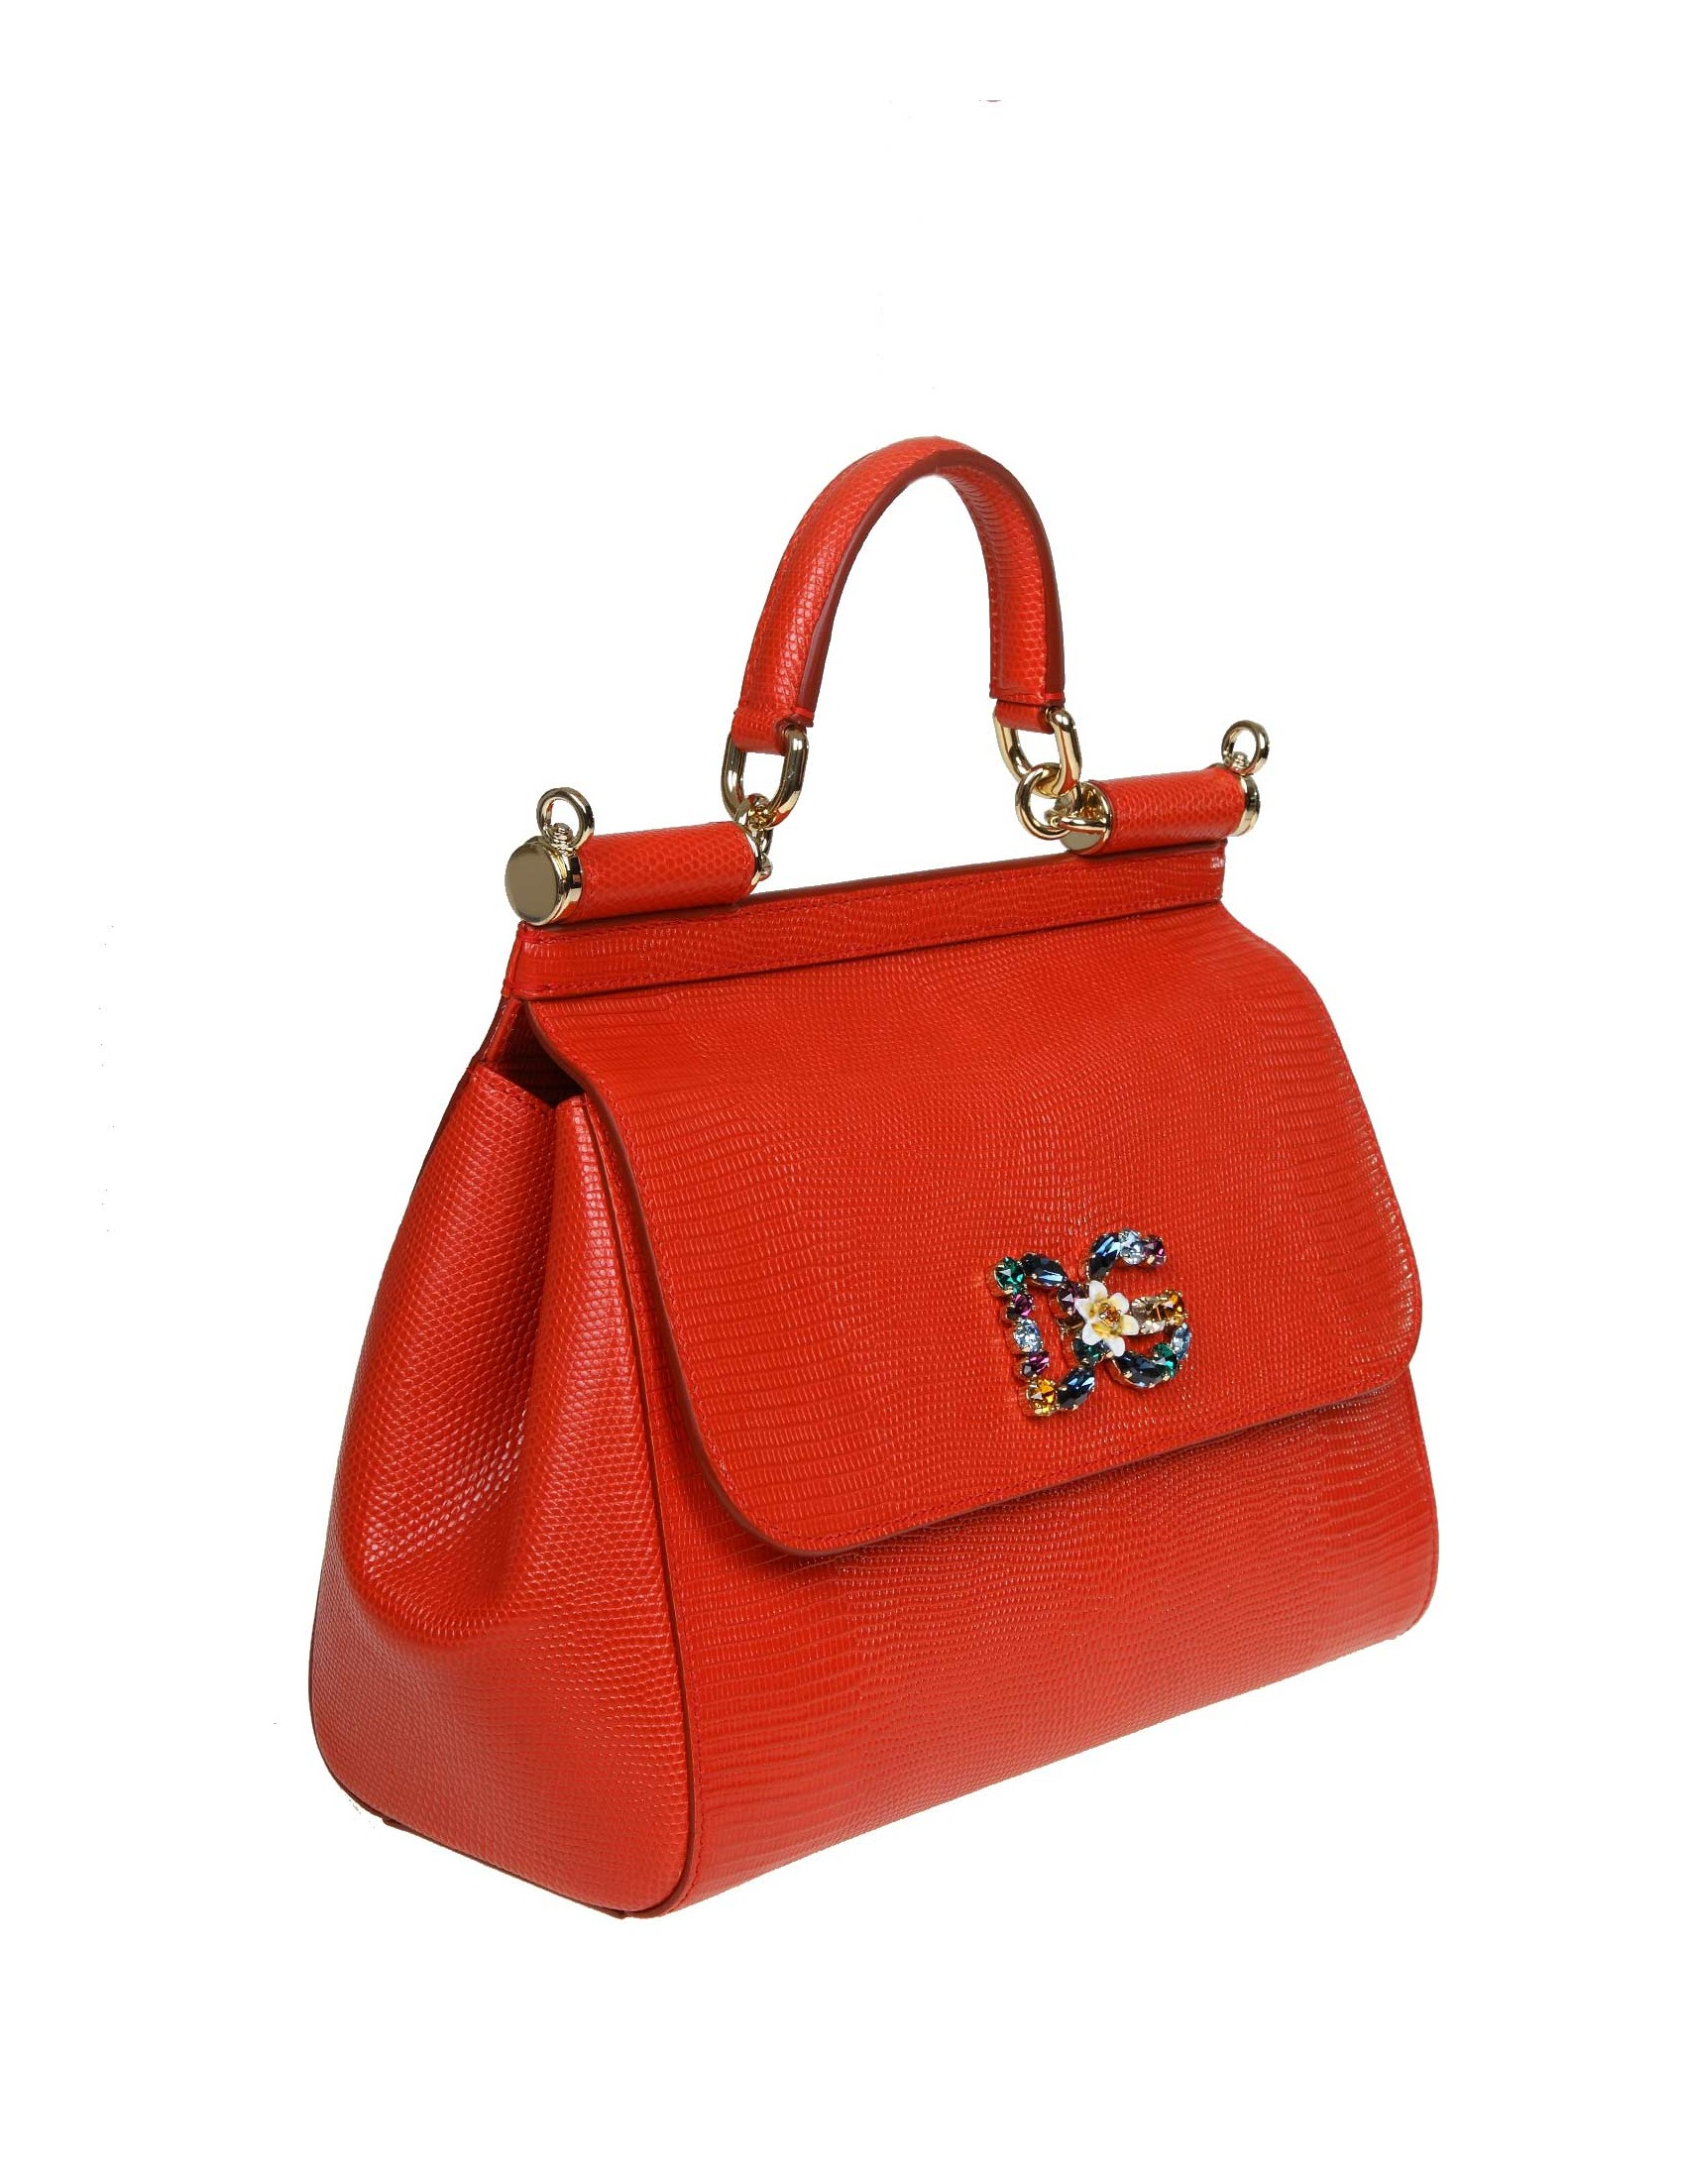 156cdae10d DOLCE & GABBANA SICILY HANDBAG RED IGUANA PRINT LEATHER WITH DG LOGO WITH  CRYSTALS